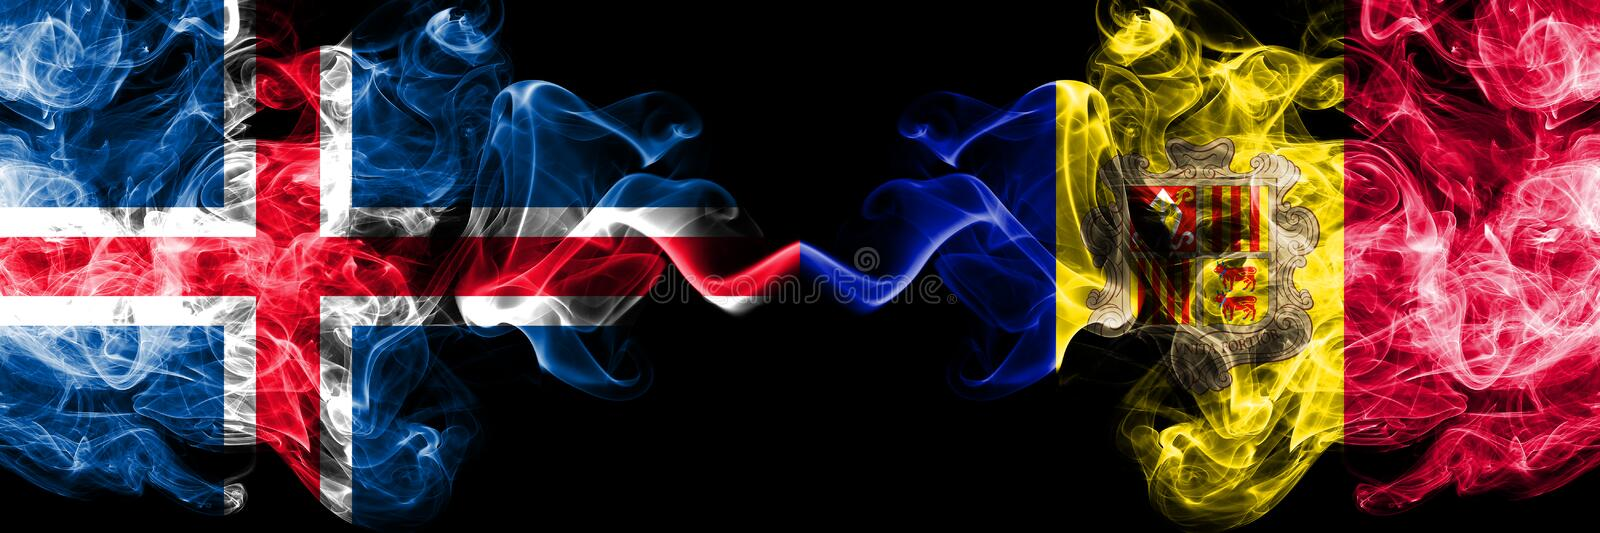 Iceland, Icelandic, Andorra, Andorran competition thick colorful smoky flags. European football qualifications games. Iceland Icelandic, Andorra, Andorran stock illustration